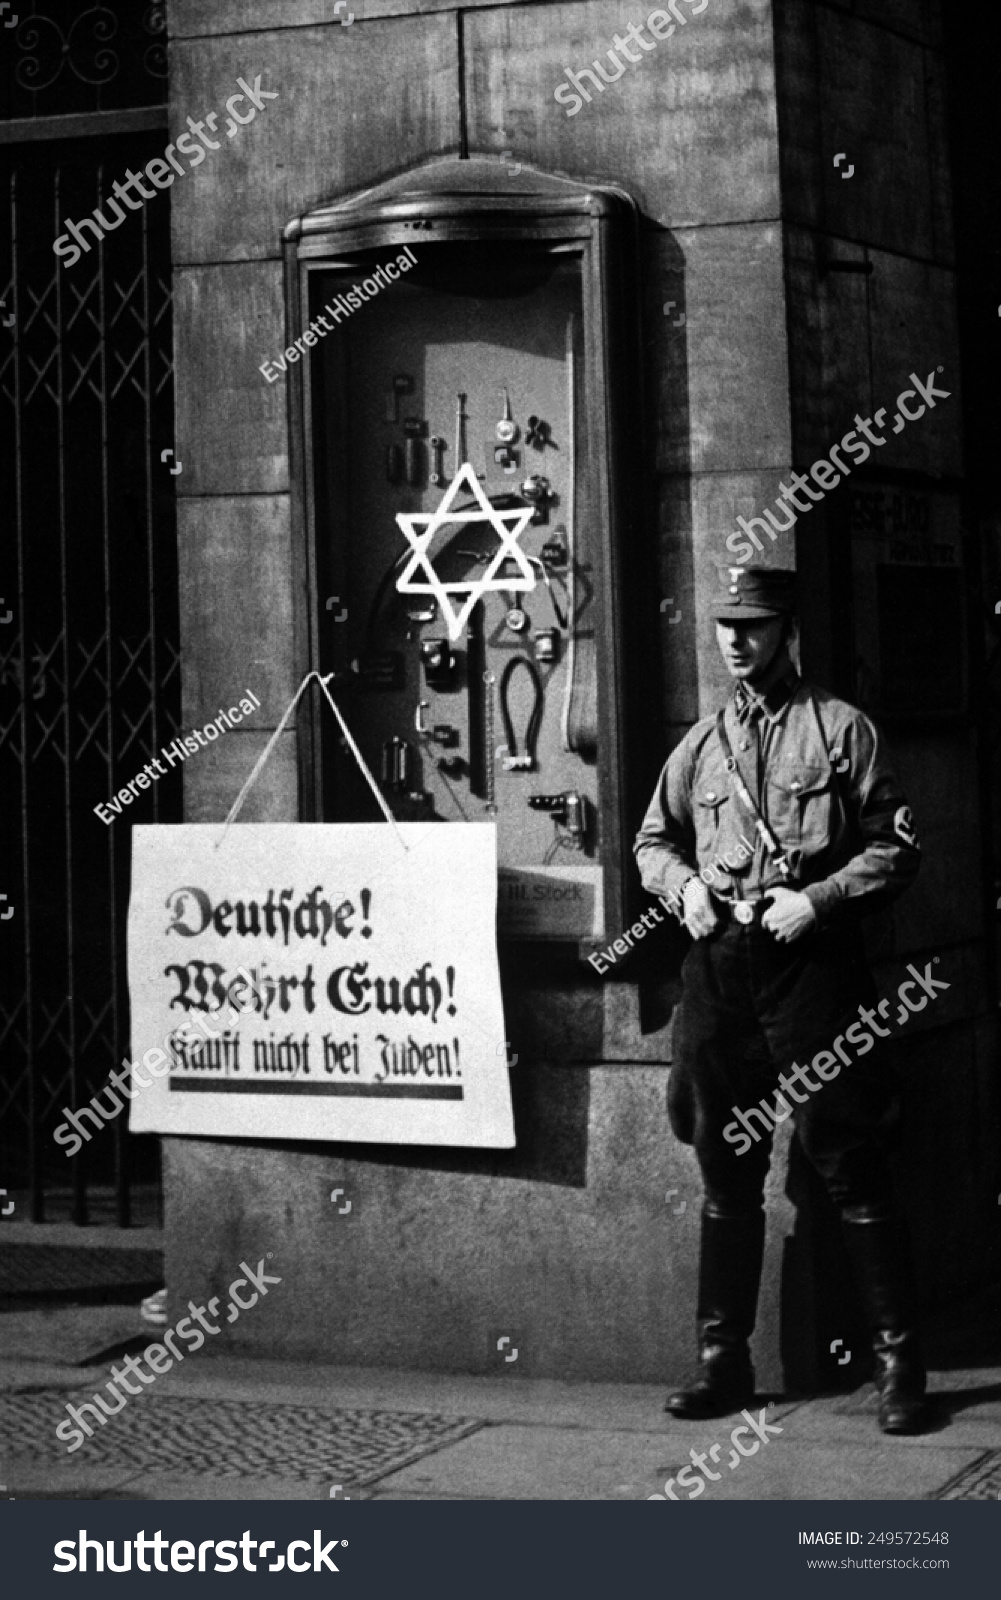 Antisemitic Boycott Berlin Germany April 1 | The Arts Stock Image ...